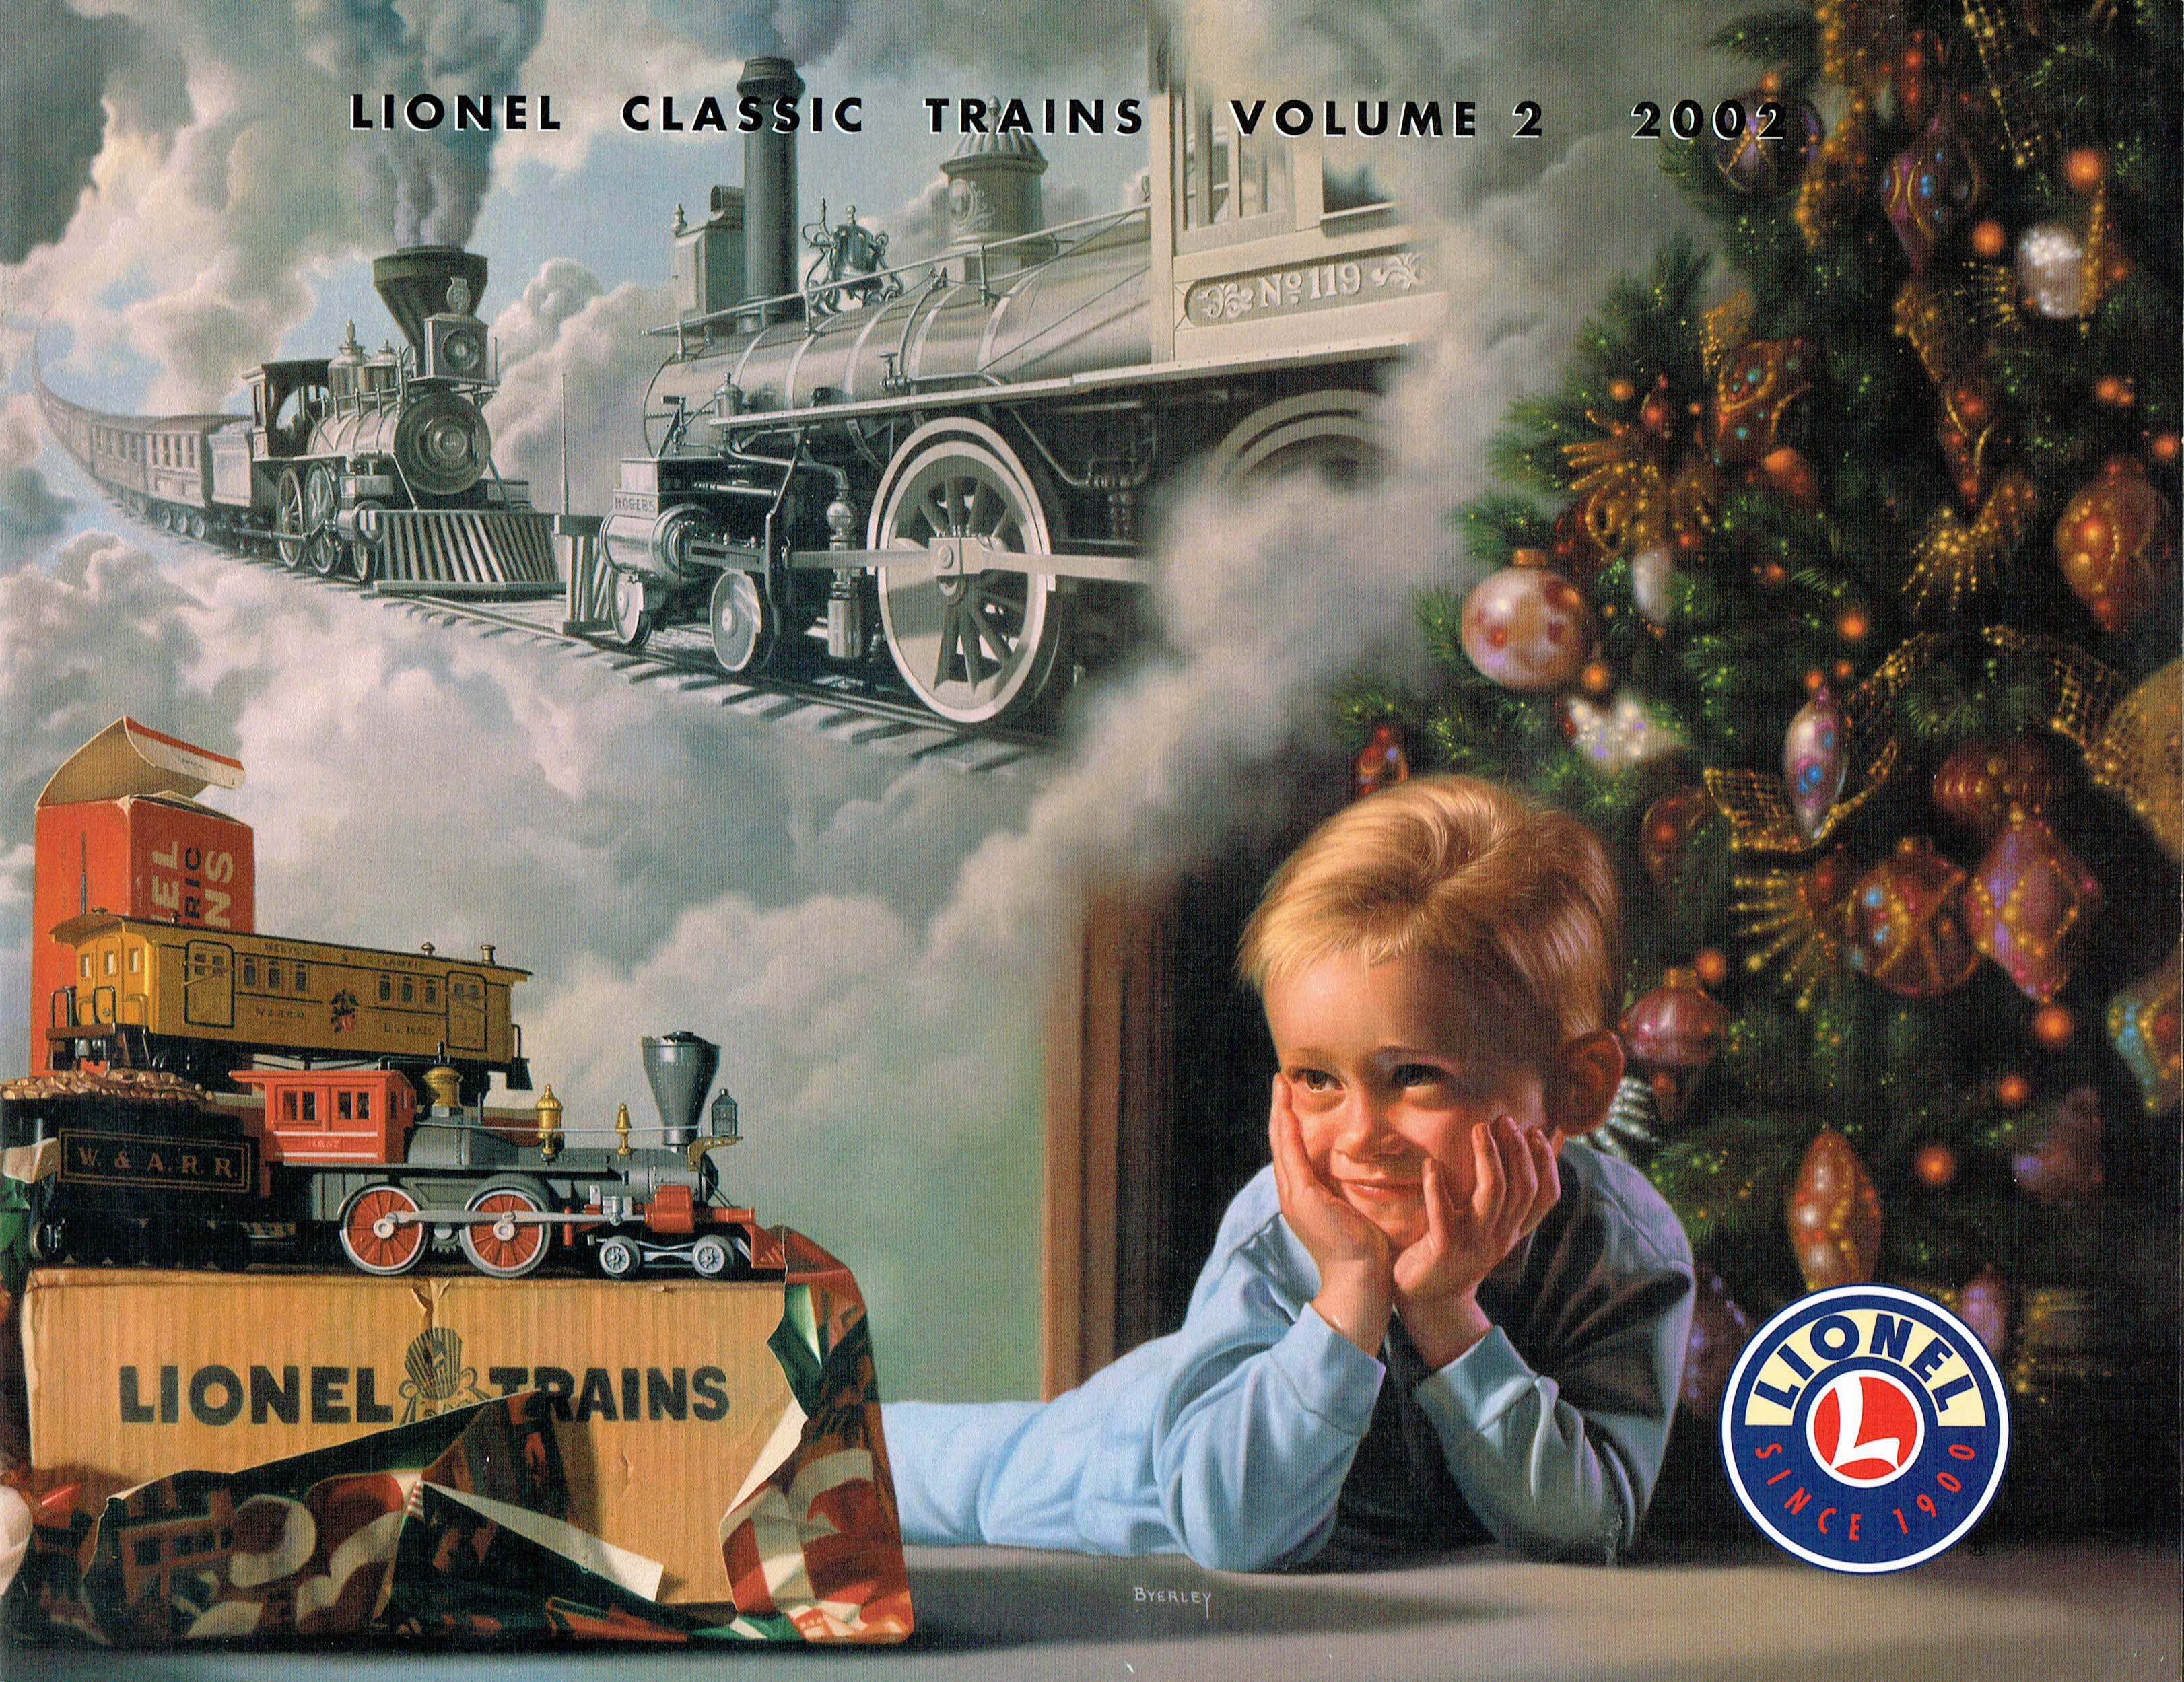 Lionel 2002 Classic Trains Volume 2 Catalog image